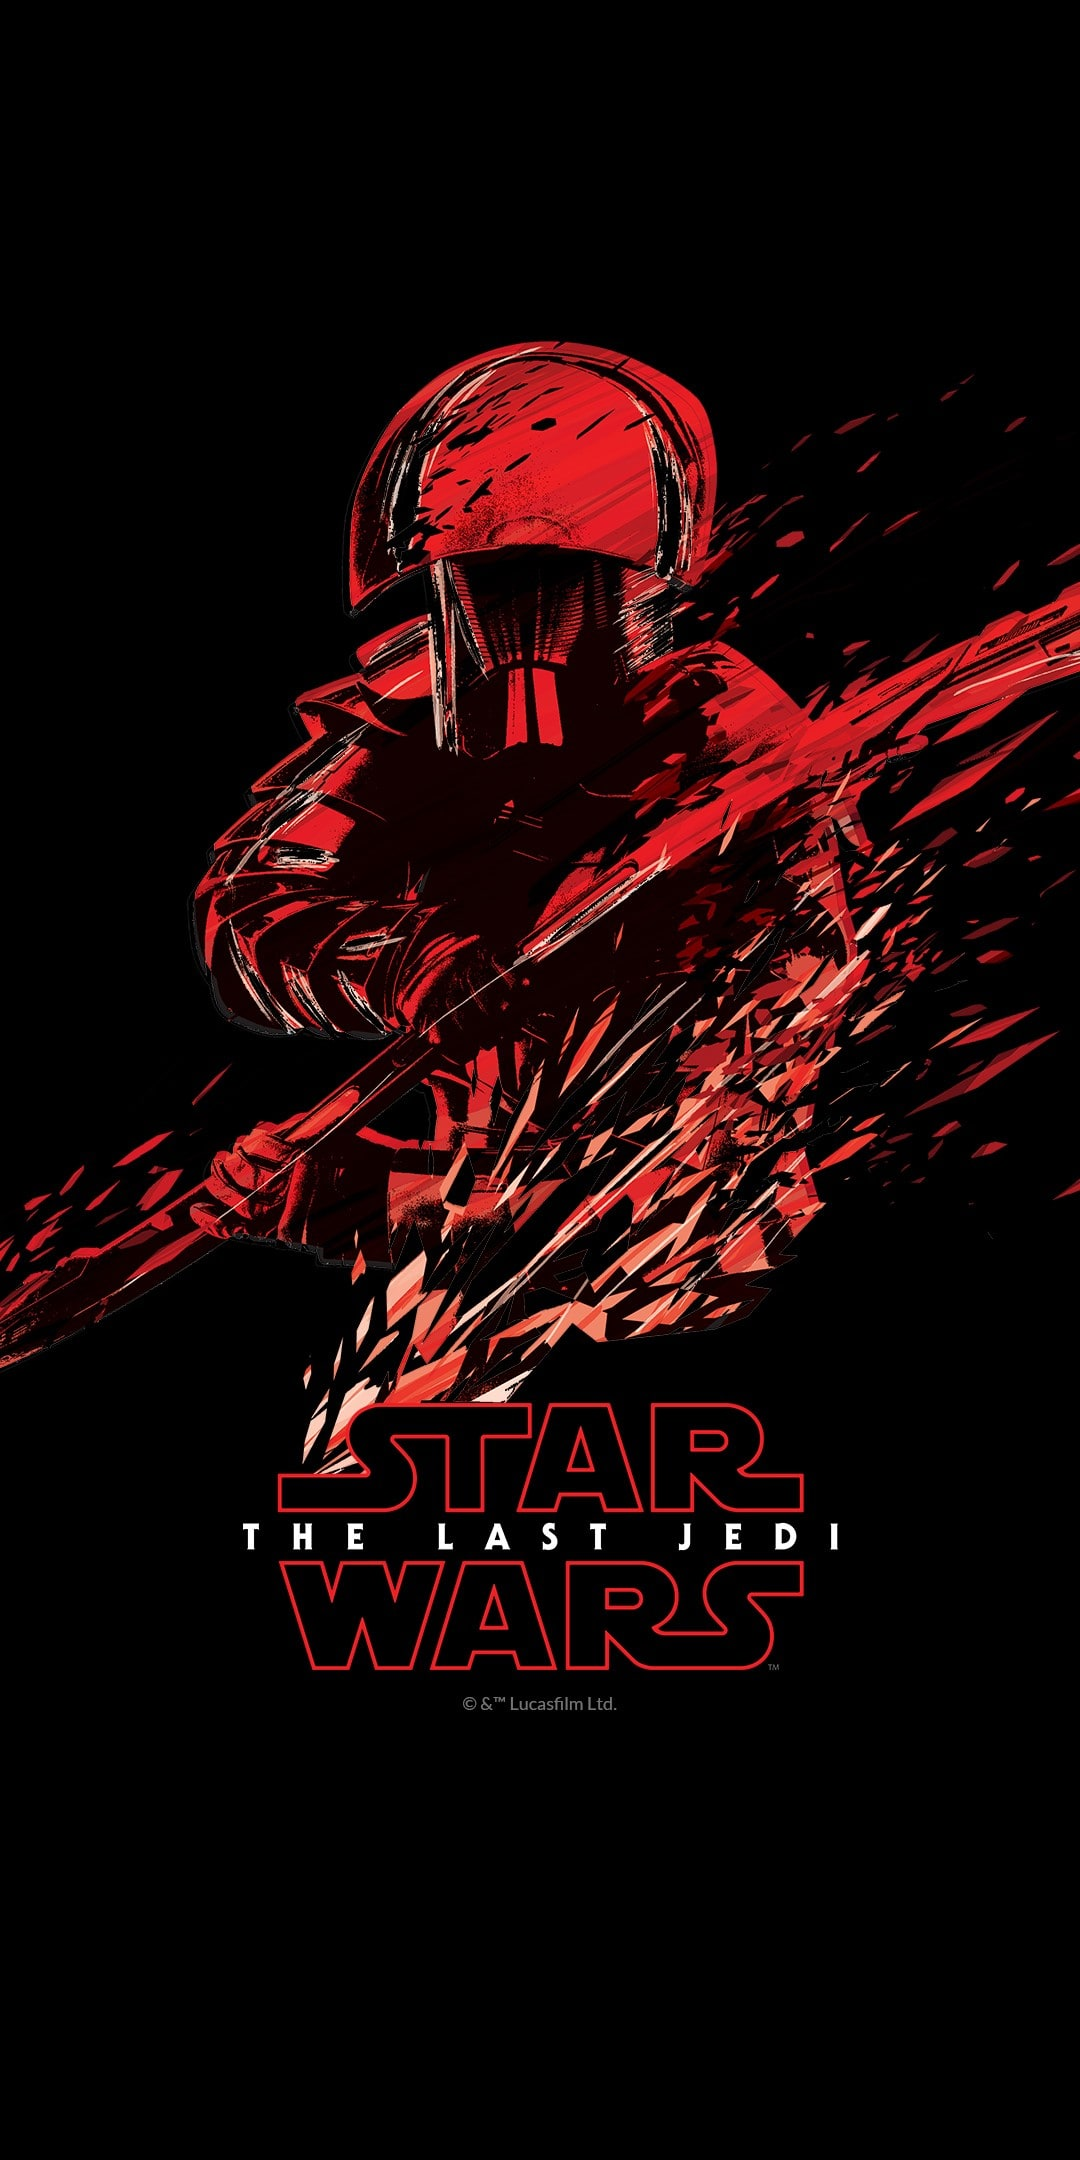 The Last Jedi Iphone Wallpaper Kolpaper Awesome Free Hd Wallpapers